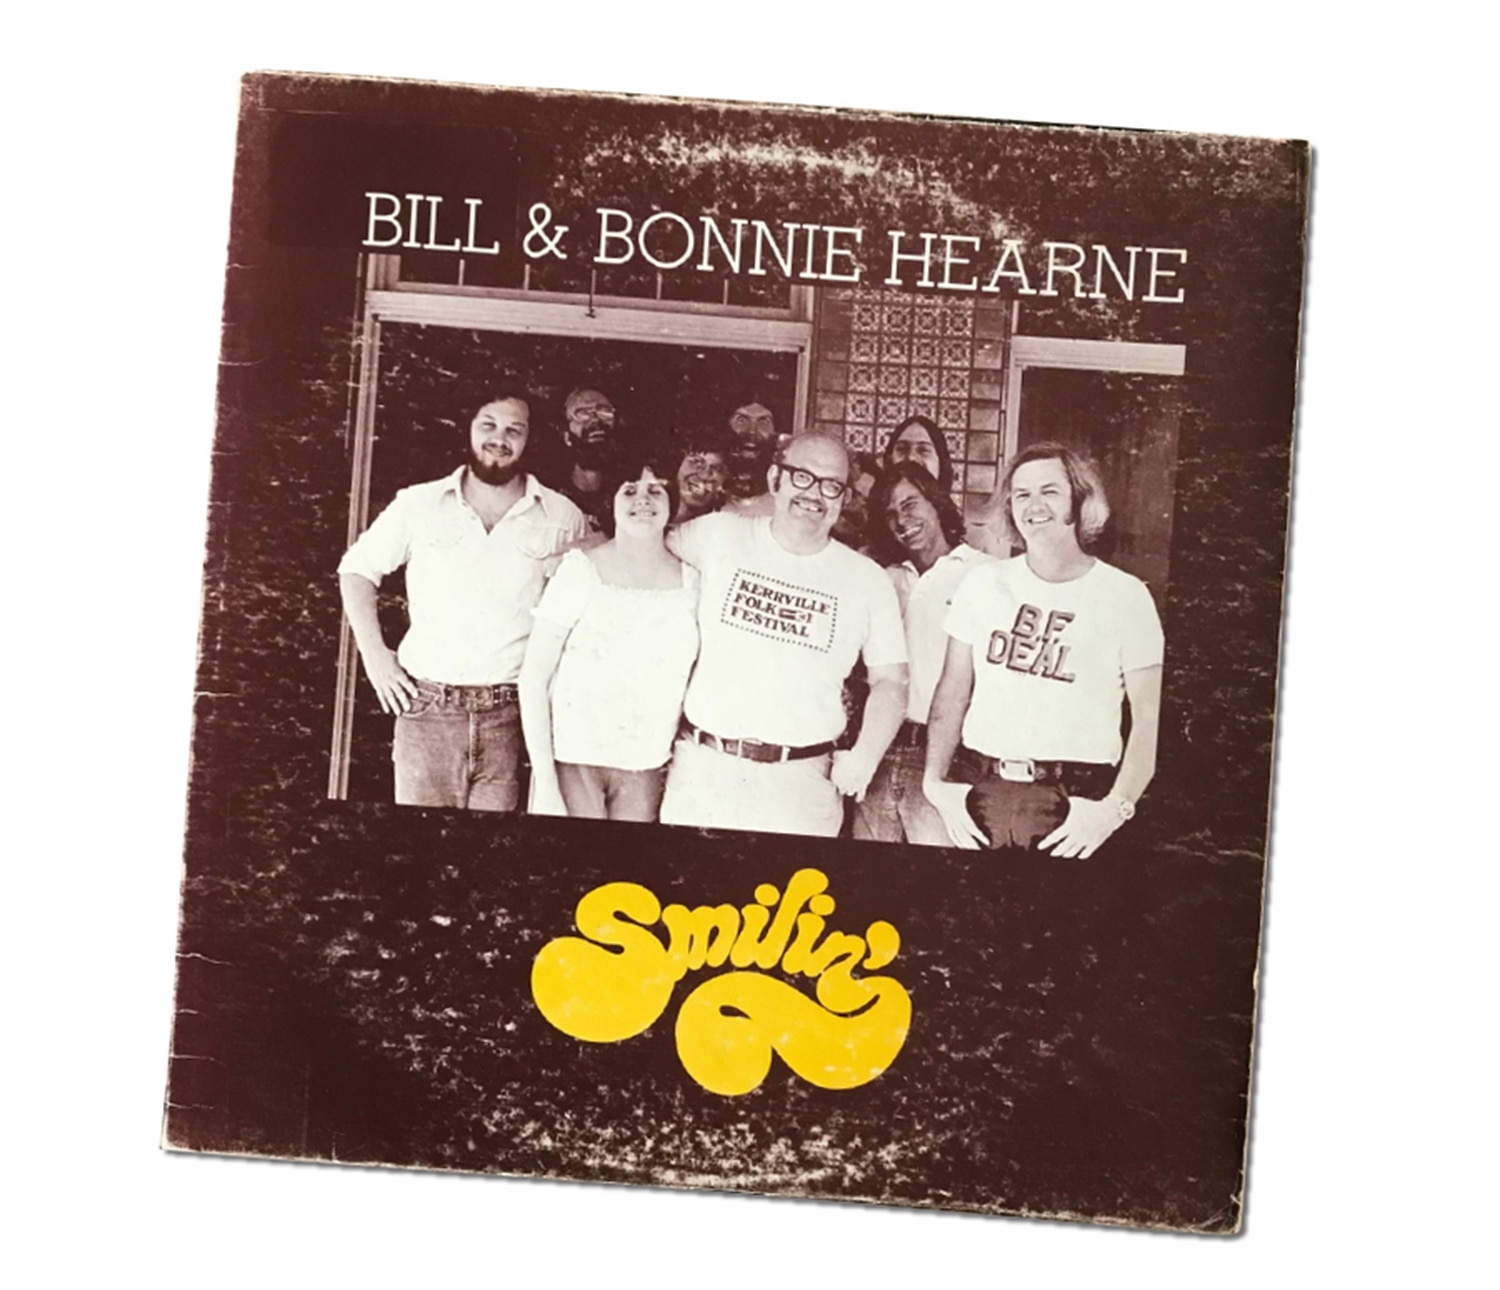 Bill and Bonnie Hearne's first album, 1977's Smilin'. Hearne says that it sold poorly, but that he and Bonnie learned a lot by undertaking the process.